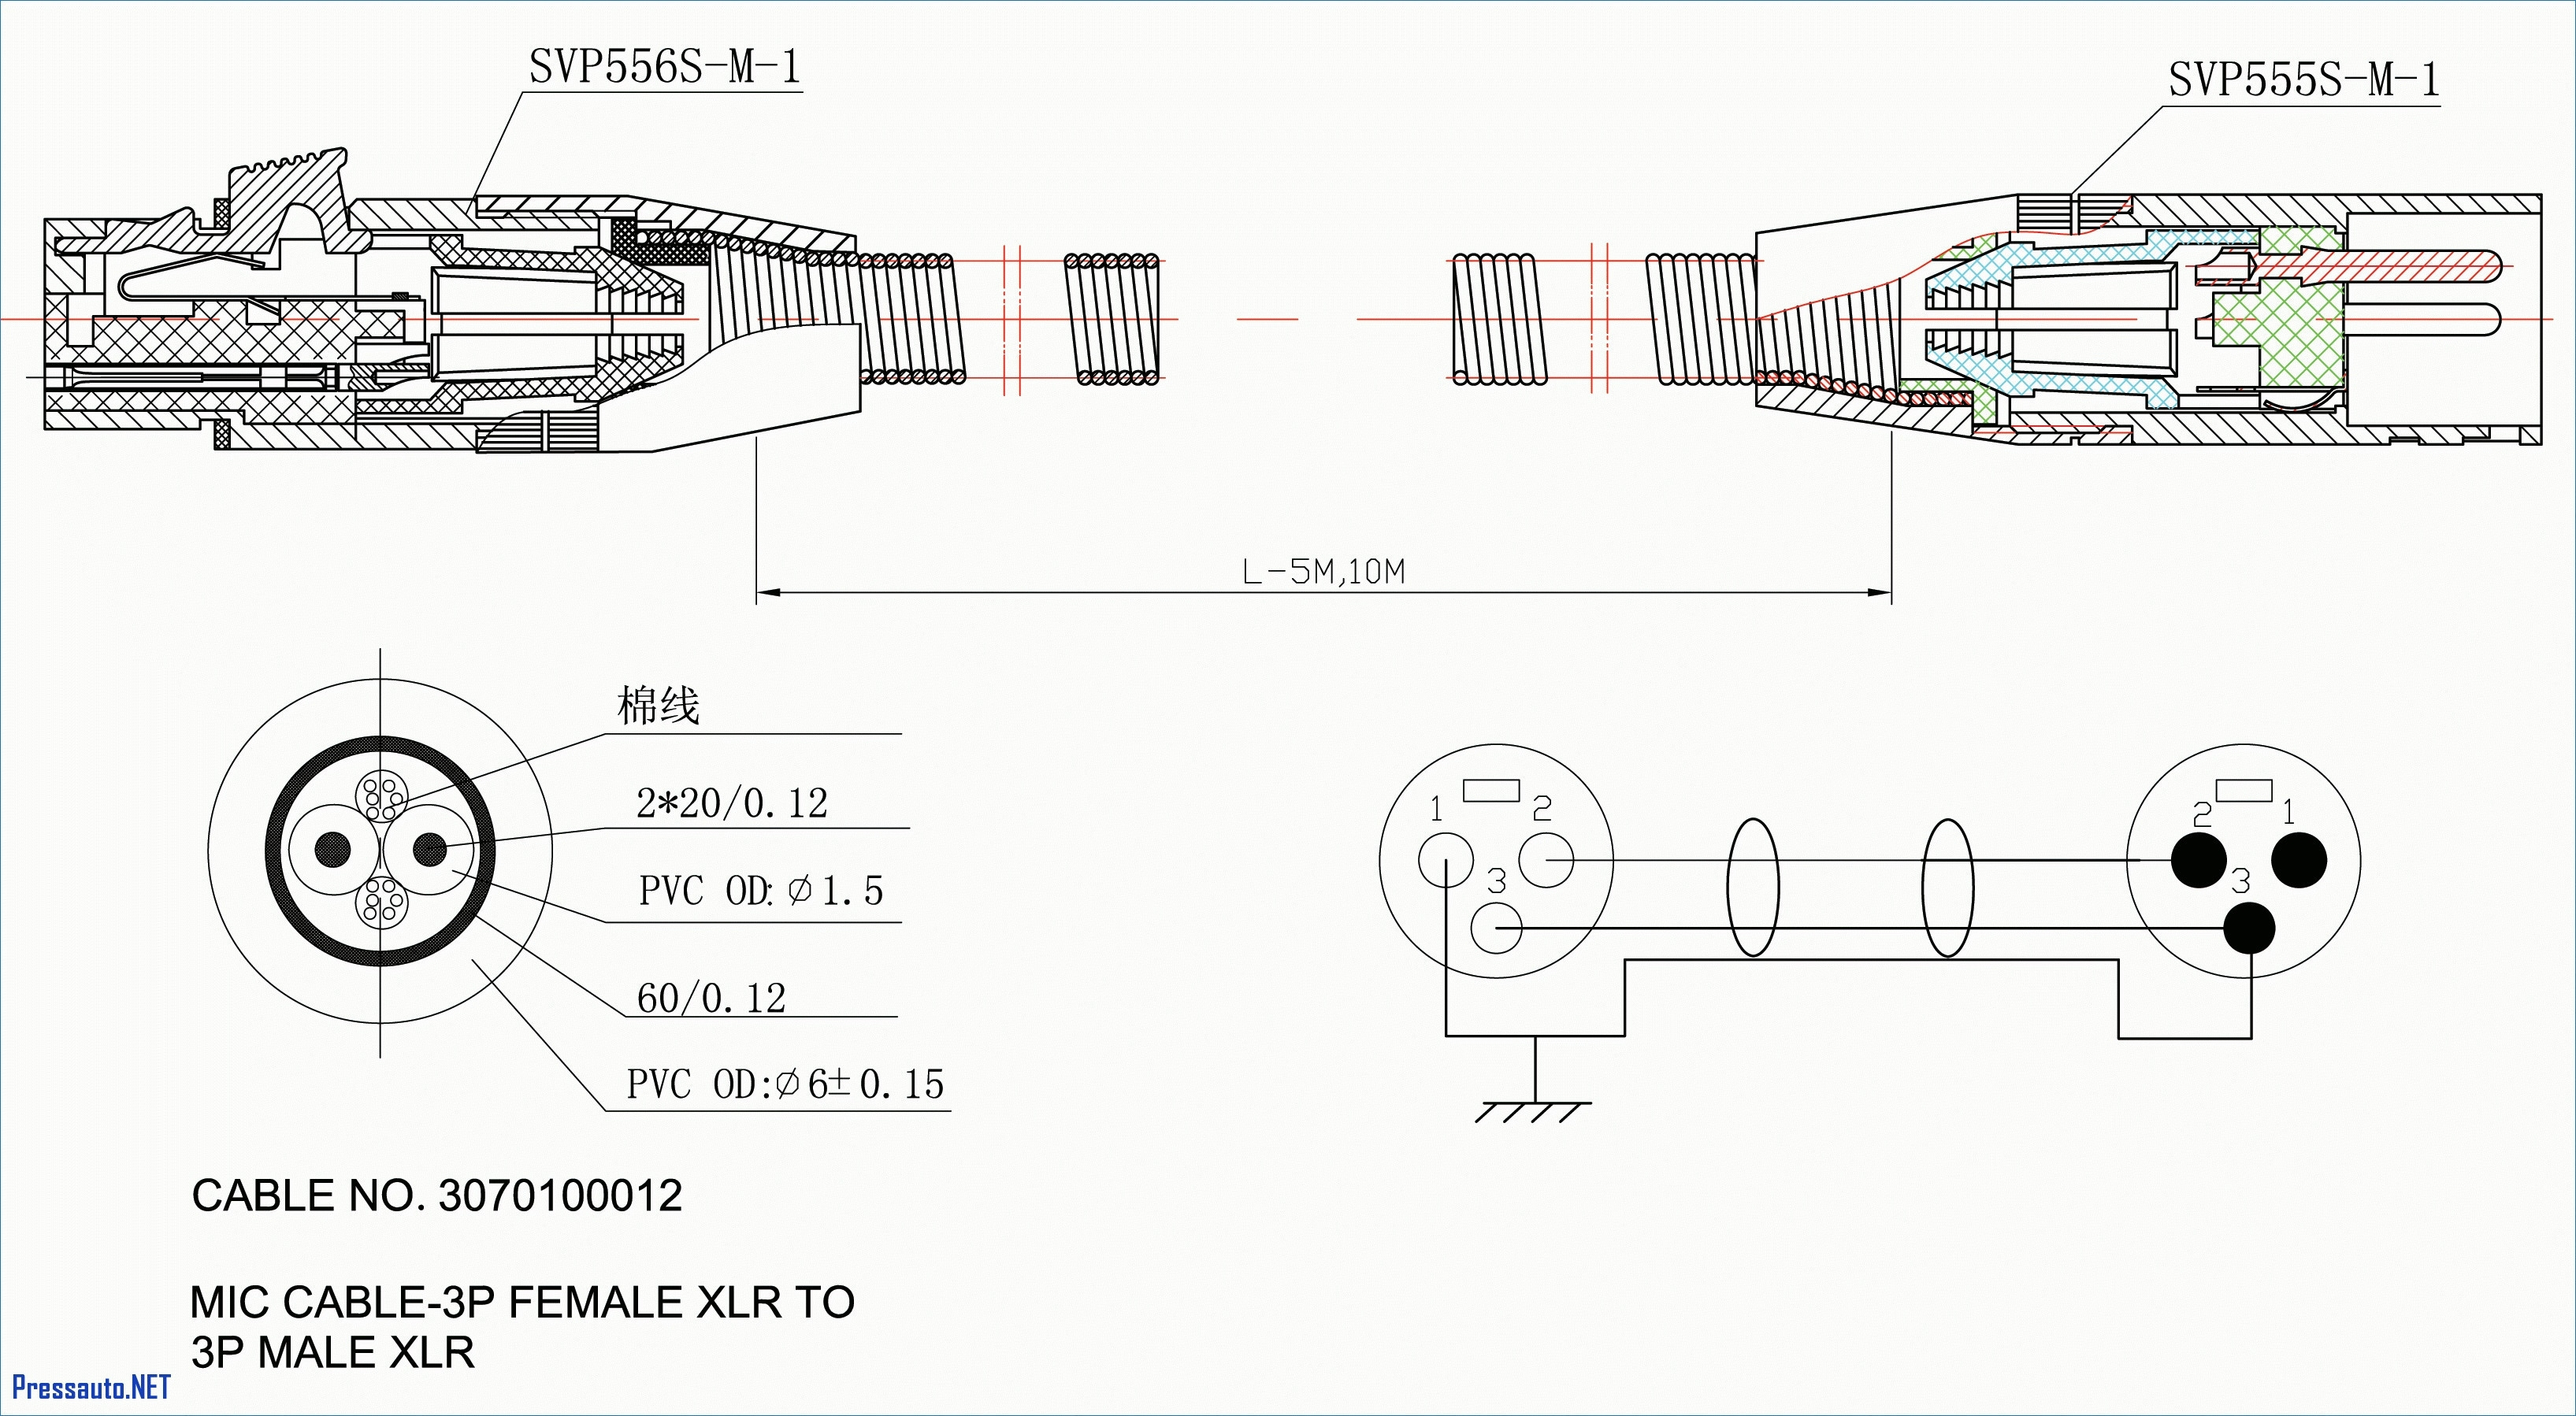 gibson les paul wiring schematic - wiring diagram les paul top rated wiring  diagram for gibson